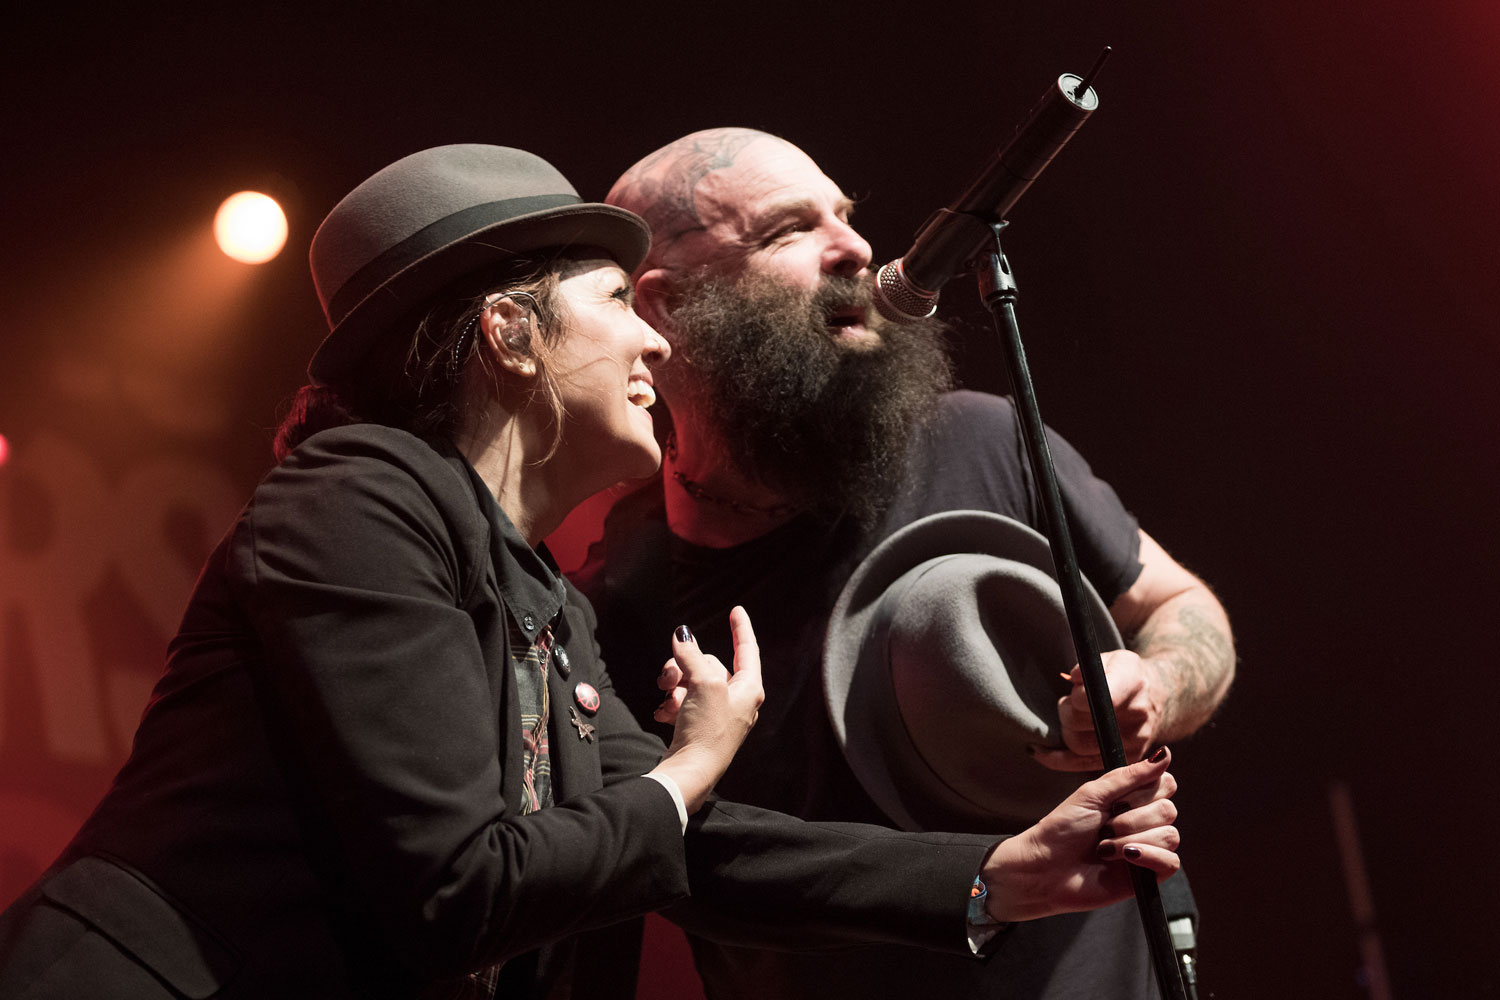 Tim Armstrong Joins The Interrupters Onstage At Coachella